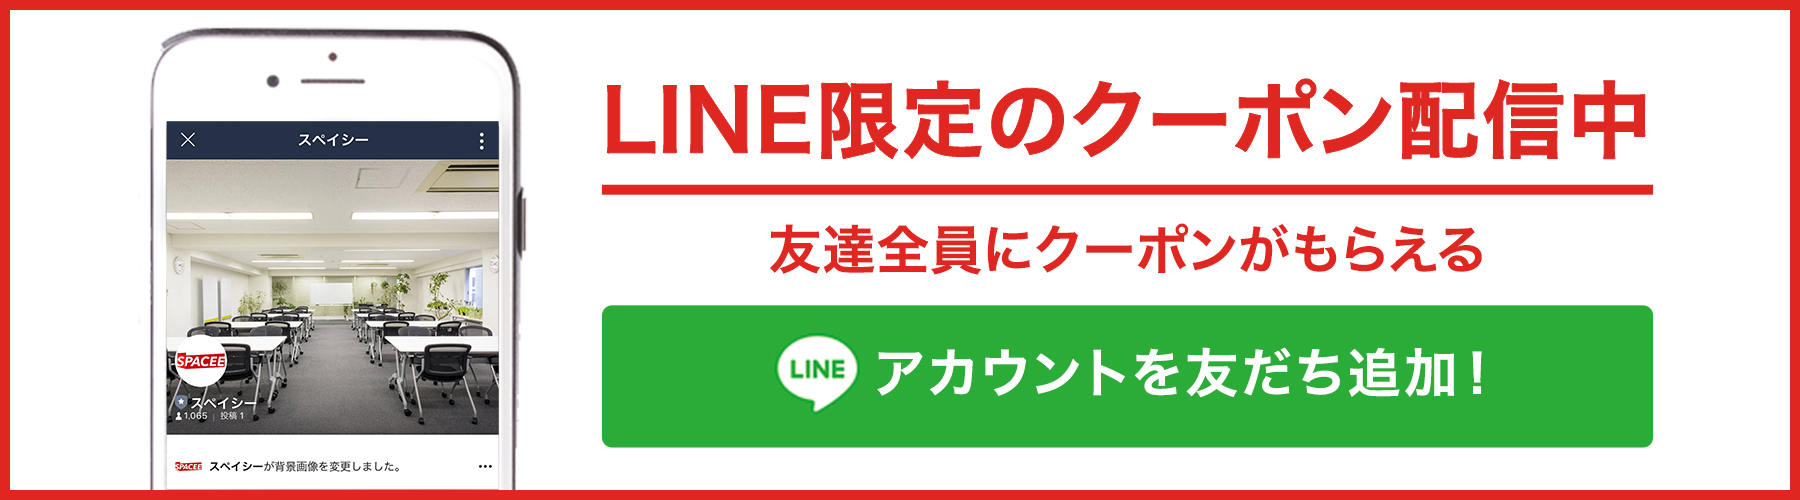 Line pc space